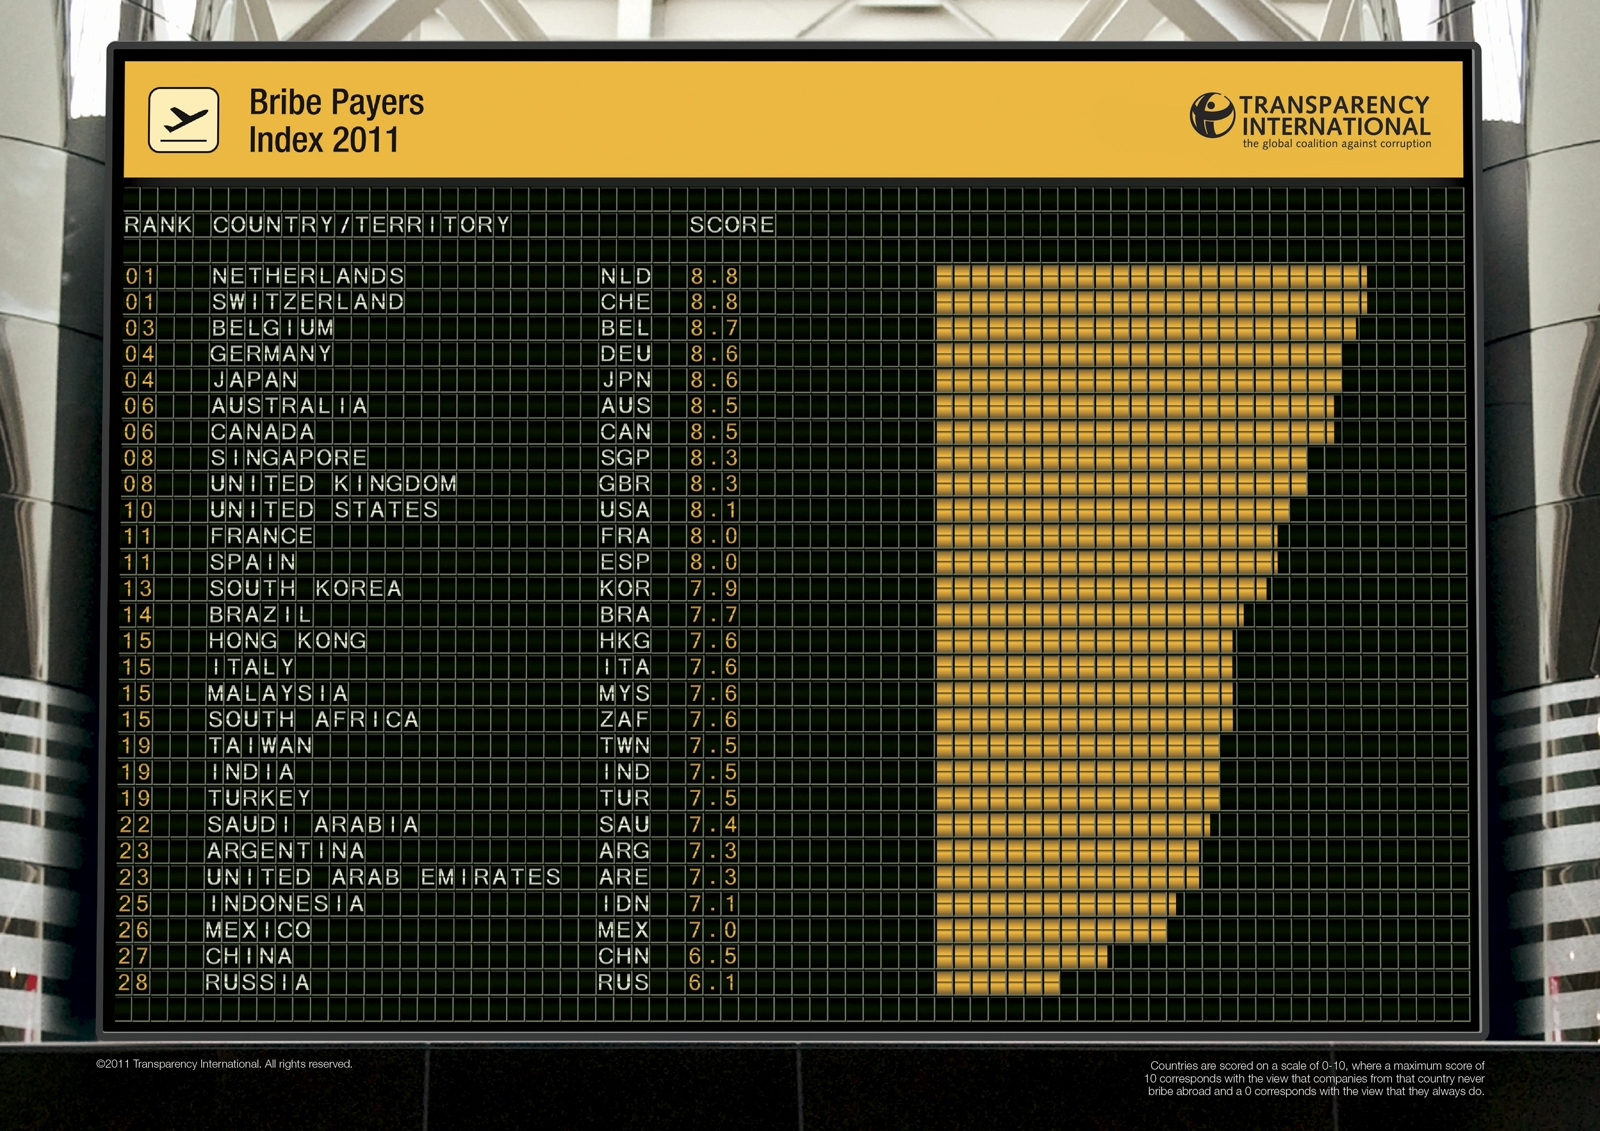 Bribe payers Transparency Index 2011